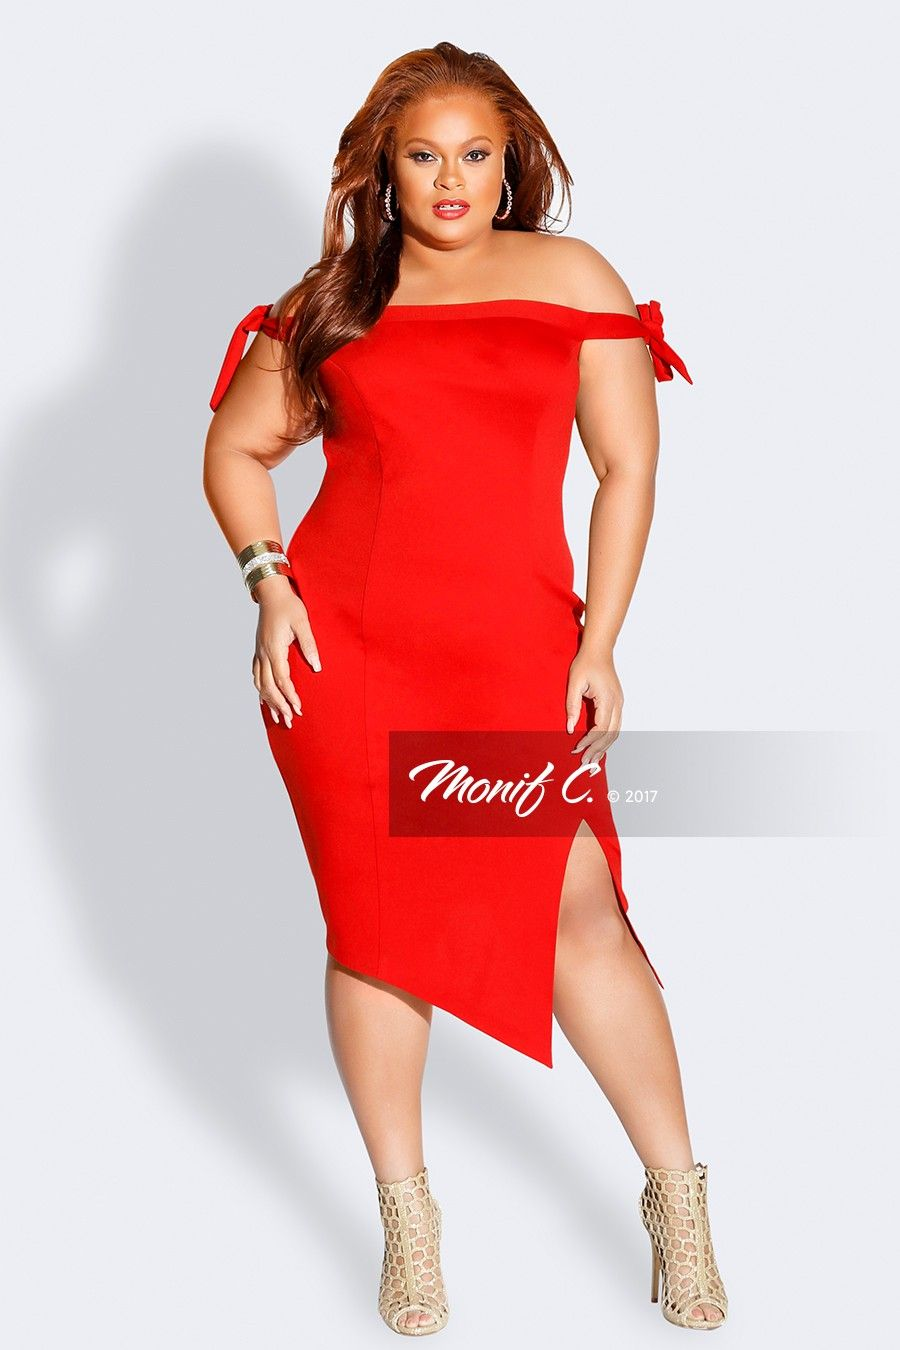 Pin By Sarah On Curvy And Plus Size Fashion For Women Pinterest